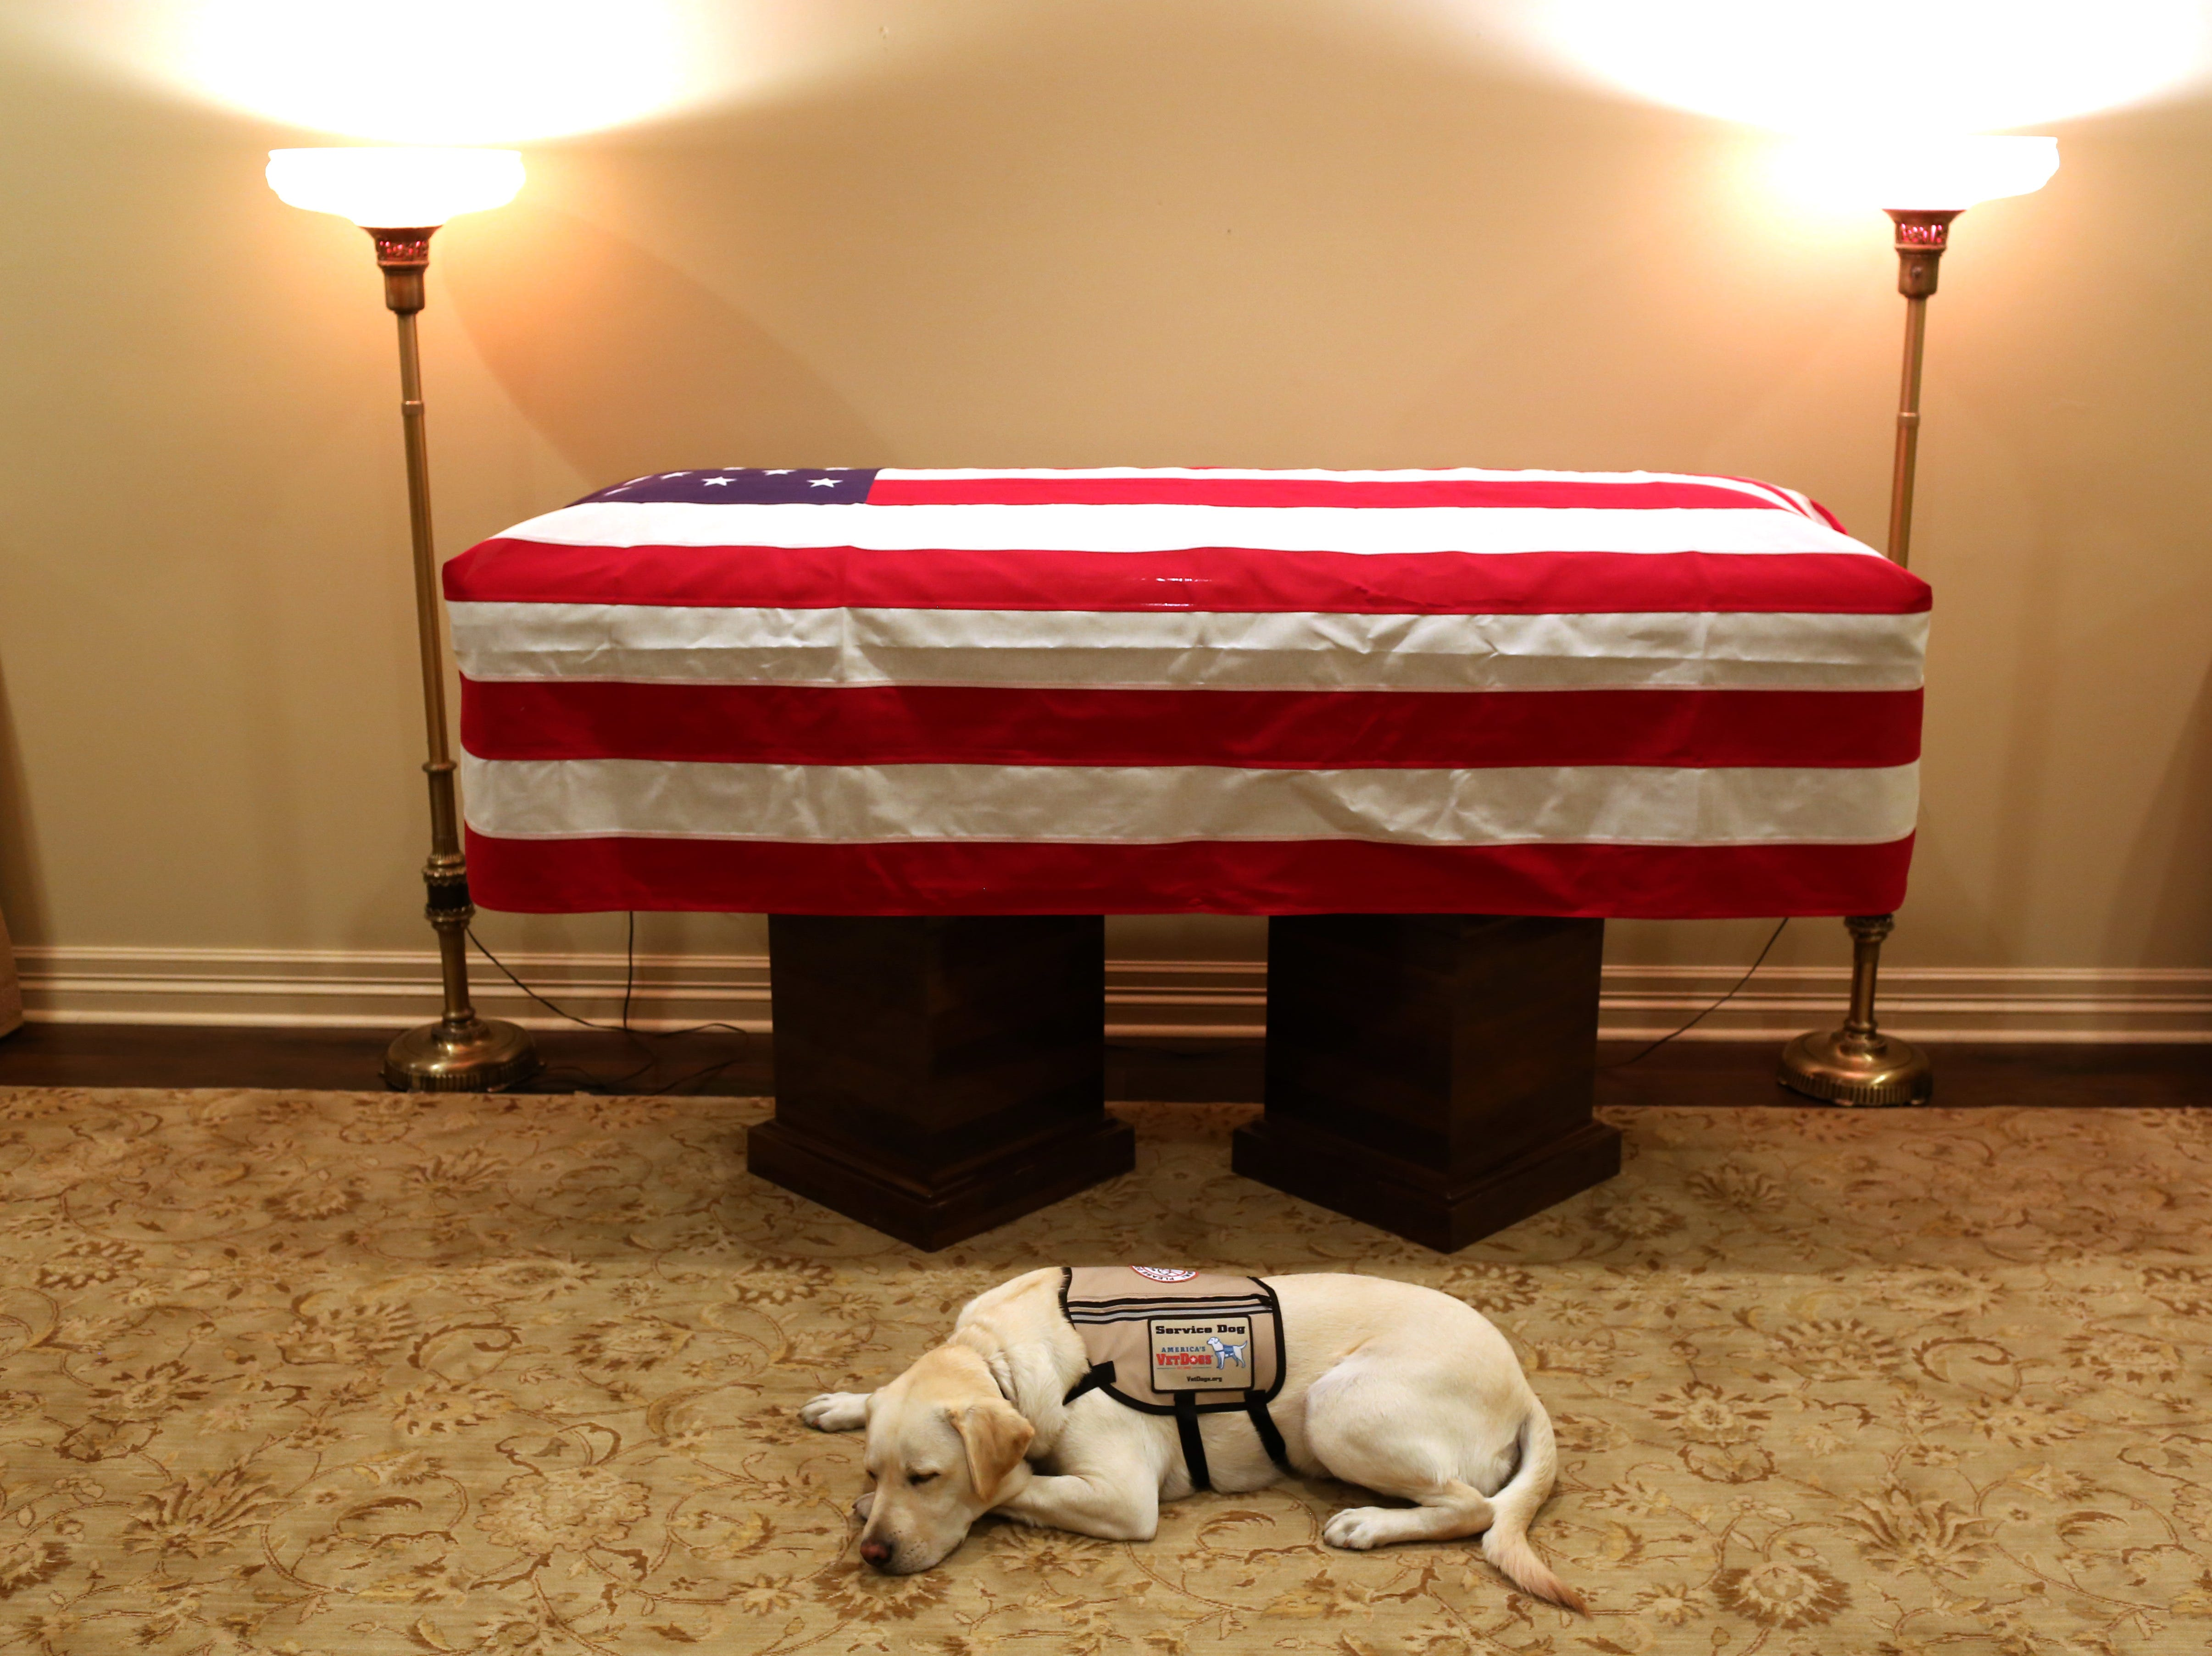 Former President George H.W. Bush's service dog, Sully, lying in front of his casket on Dec. 2, 2018.